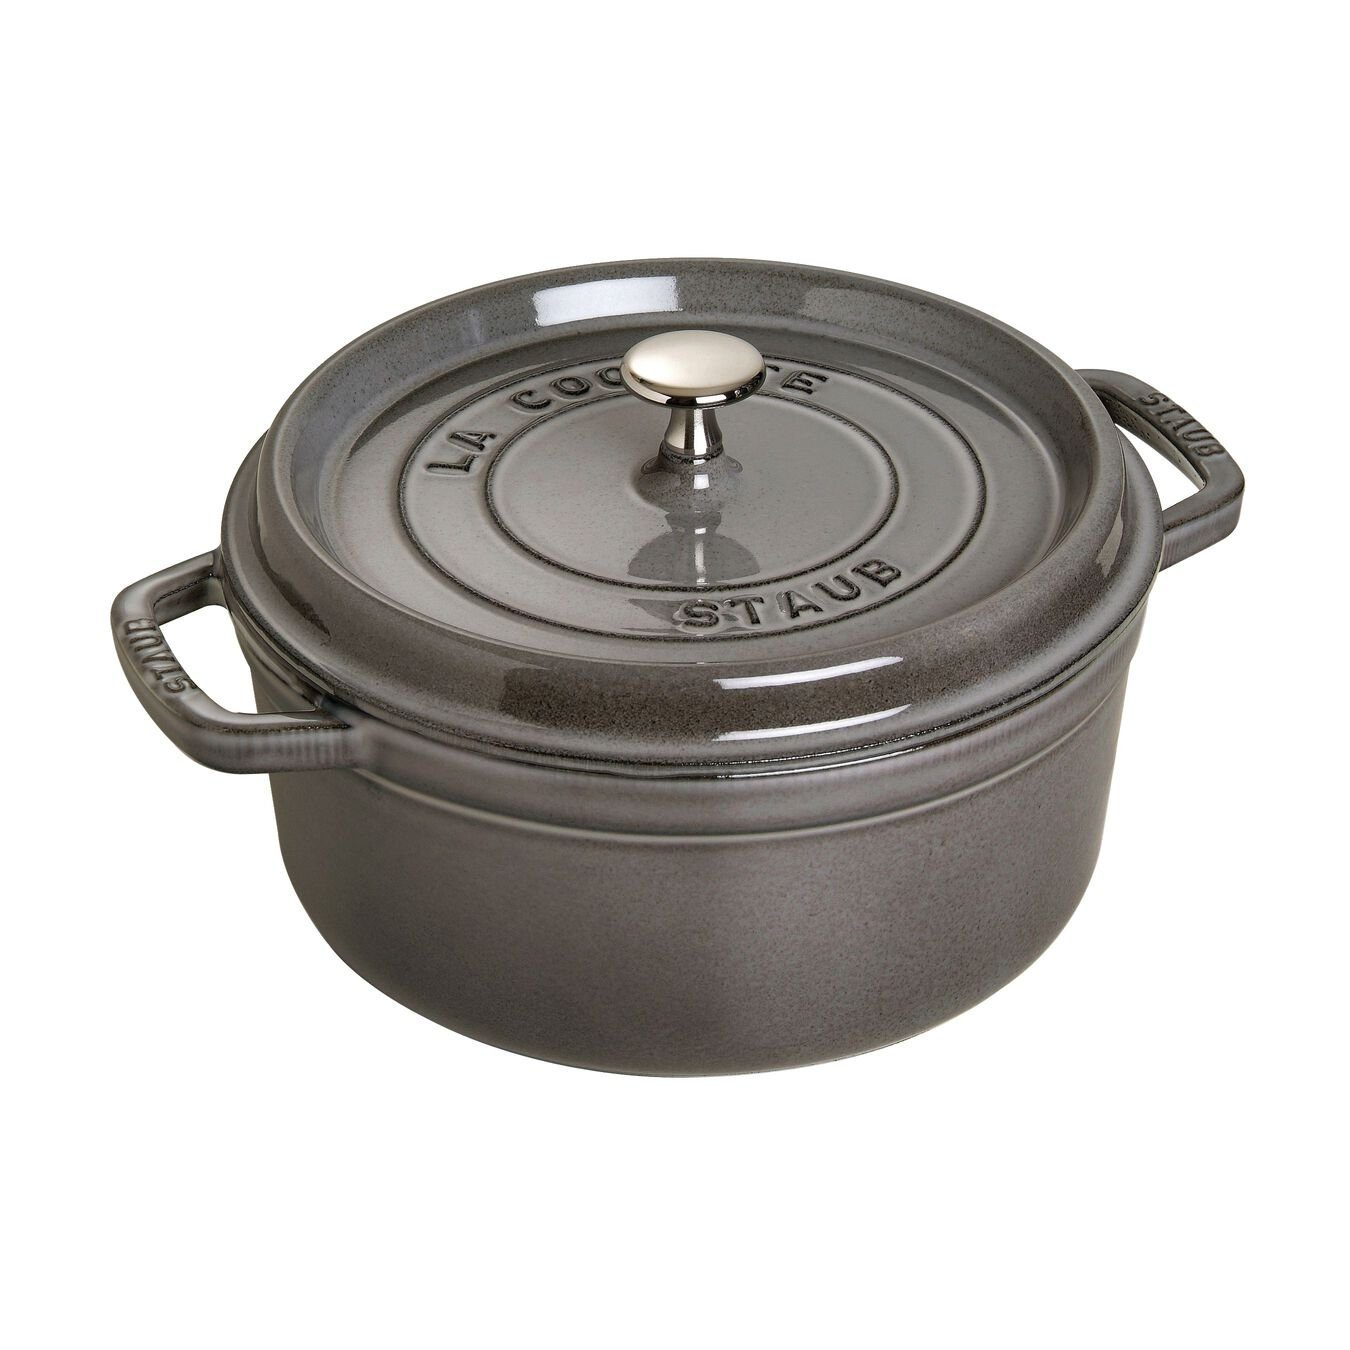 3.75 l Cast iron round Cocotte, graphite-grey - Visual Imperfections,,large 1